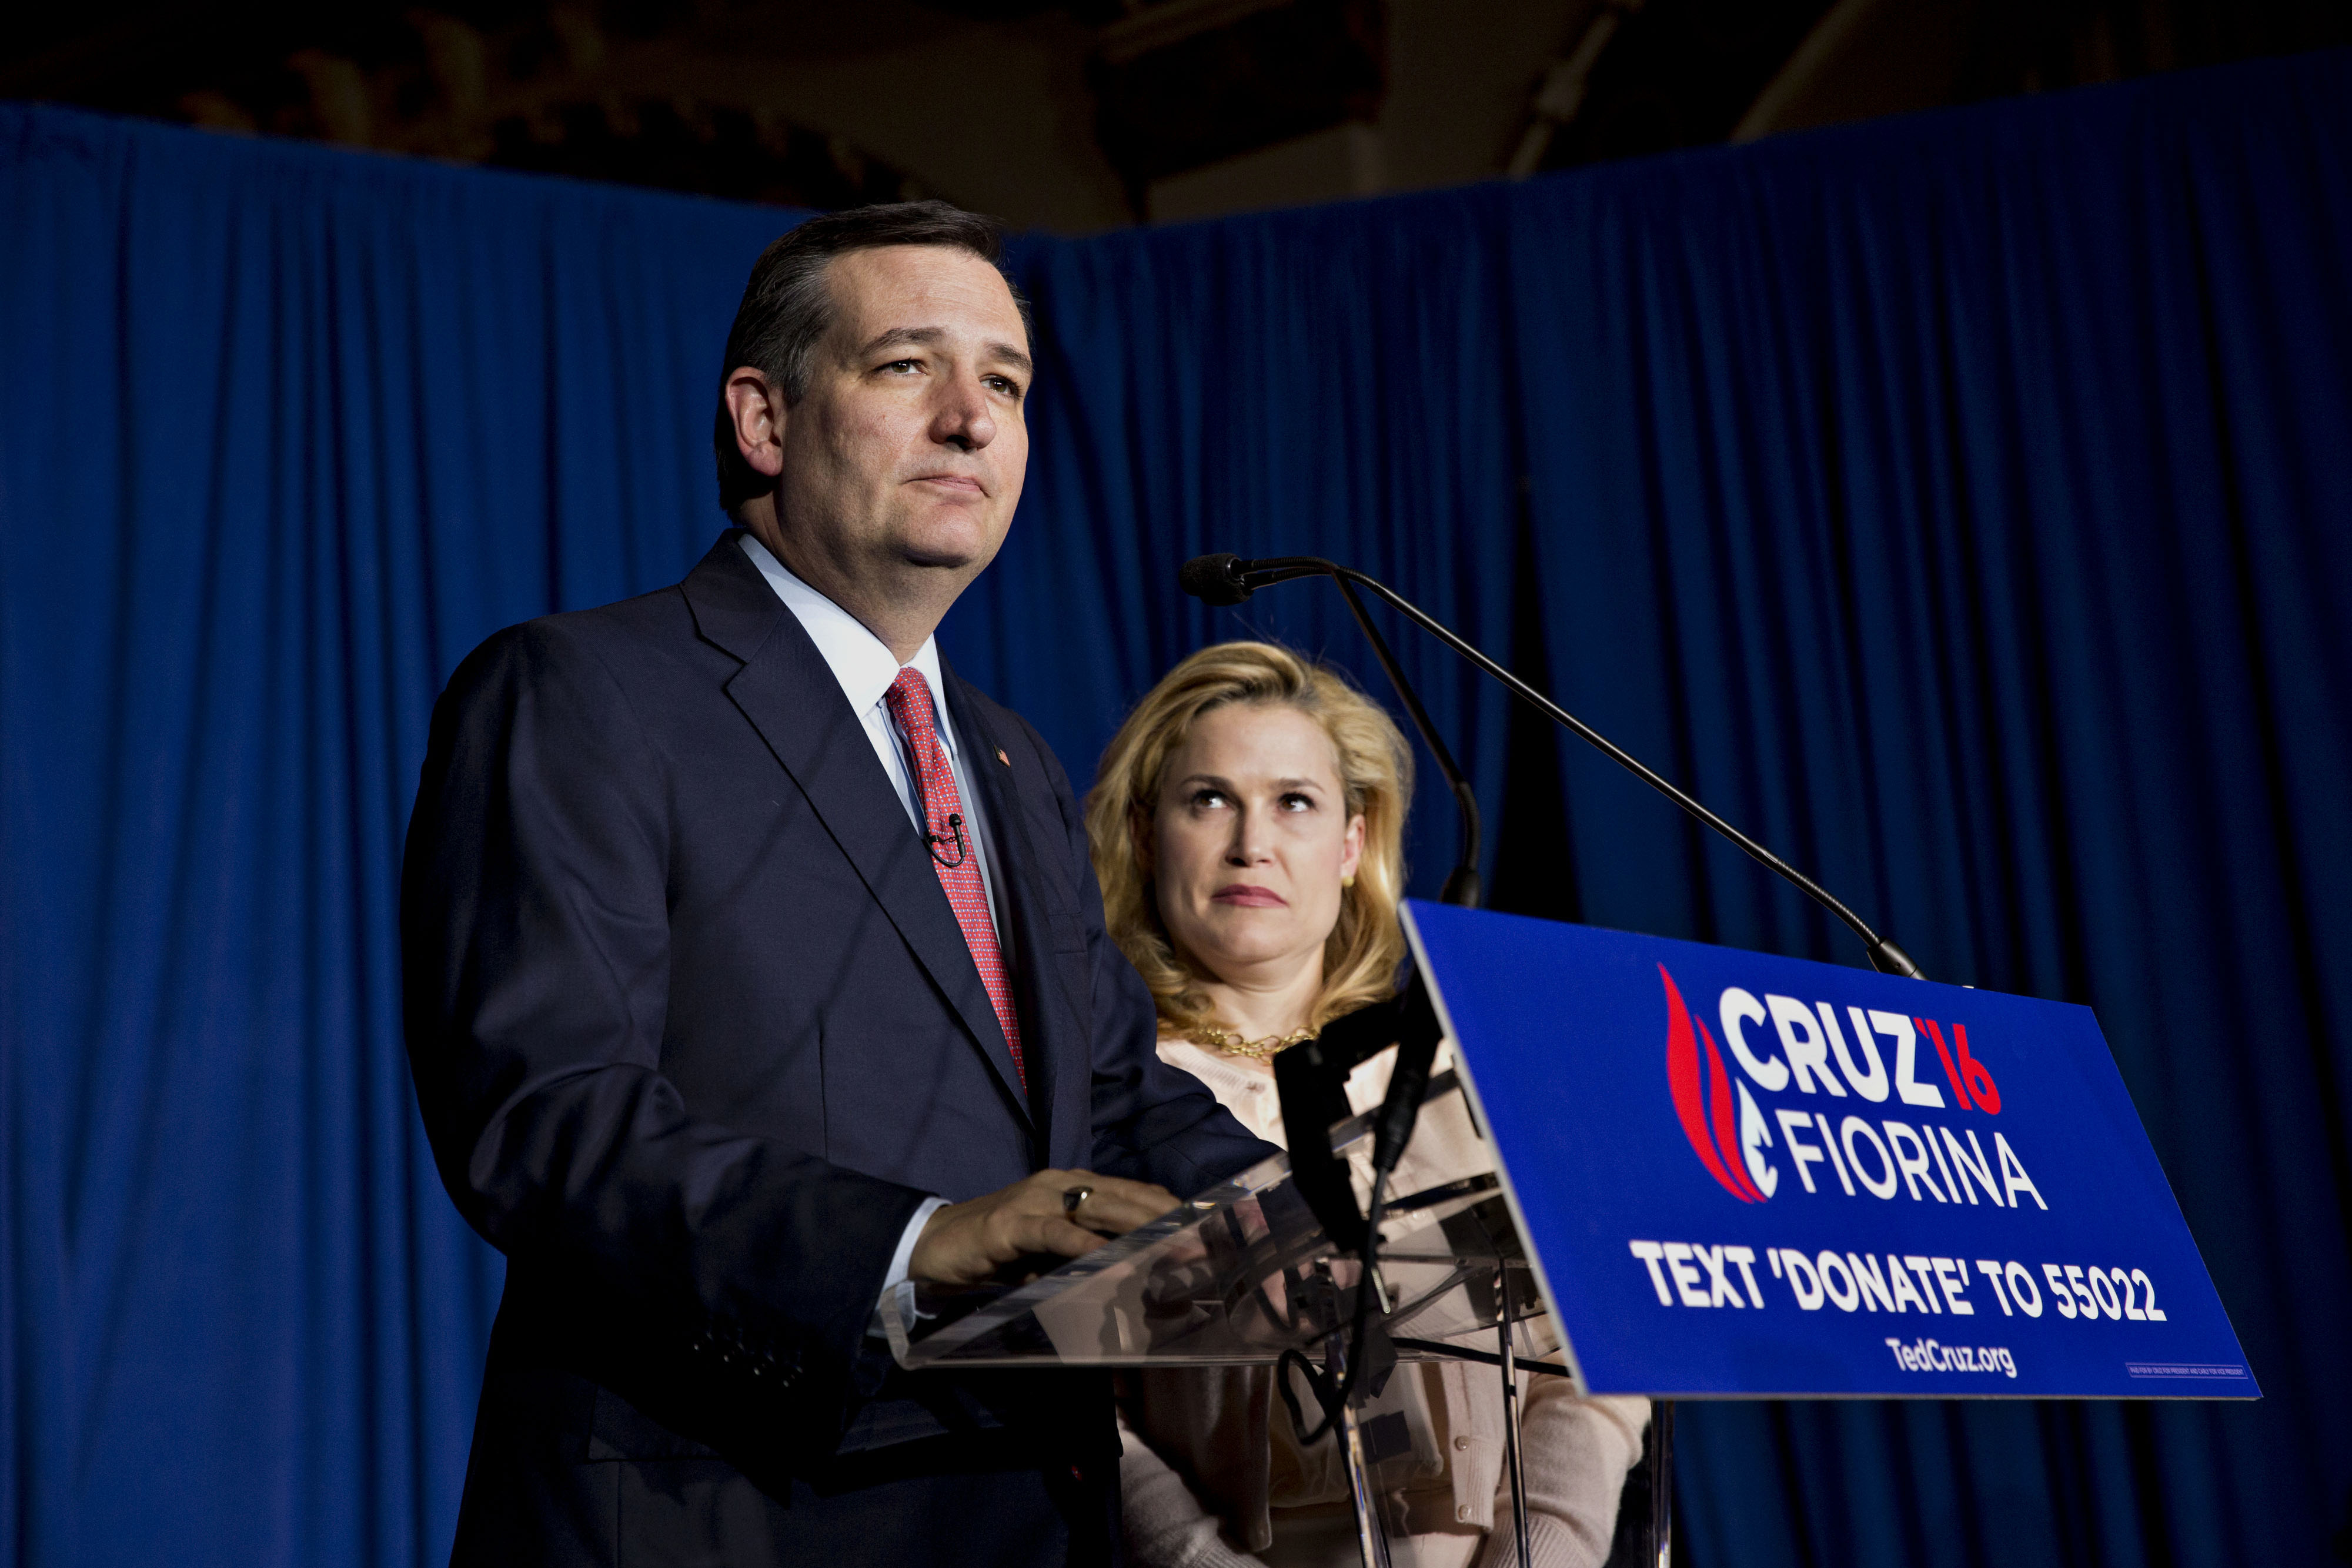 Senator Ted Cruz pauses while speaking as his wife Heidi Cruz looks on during a campaign event in Indianapolis, Indiana, on May 3, 2016.